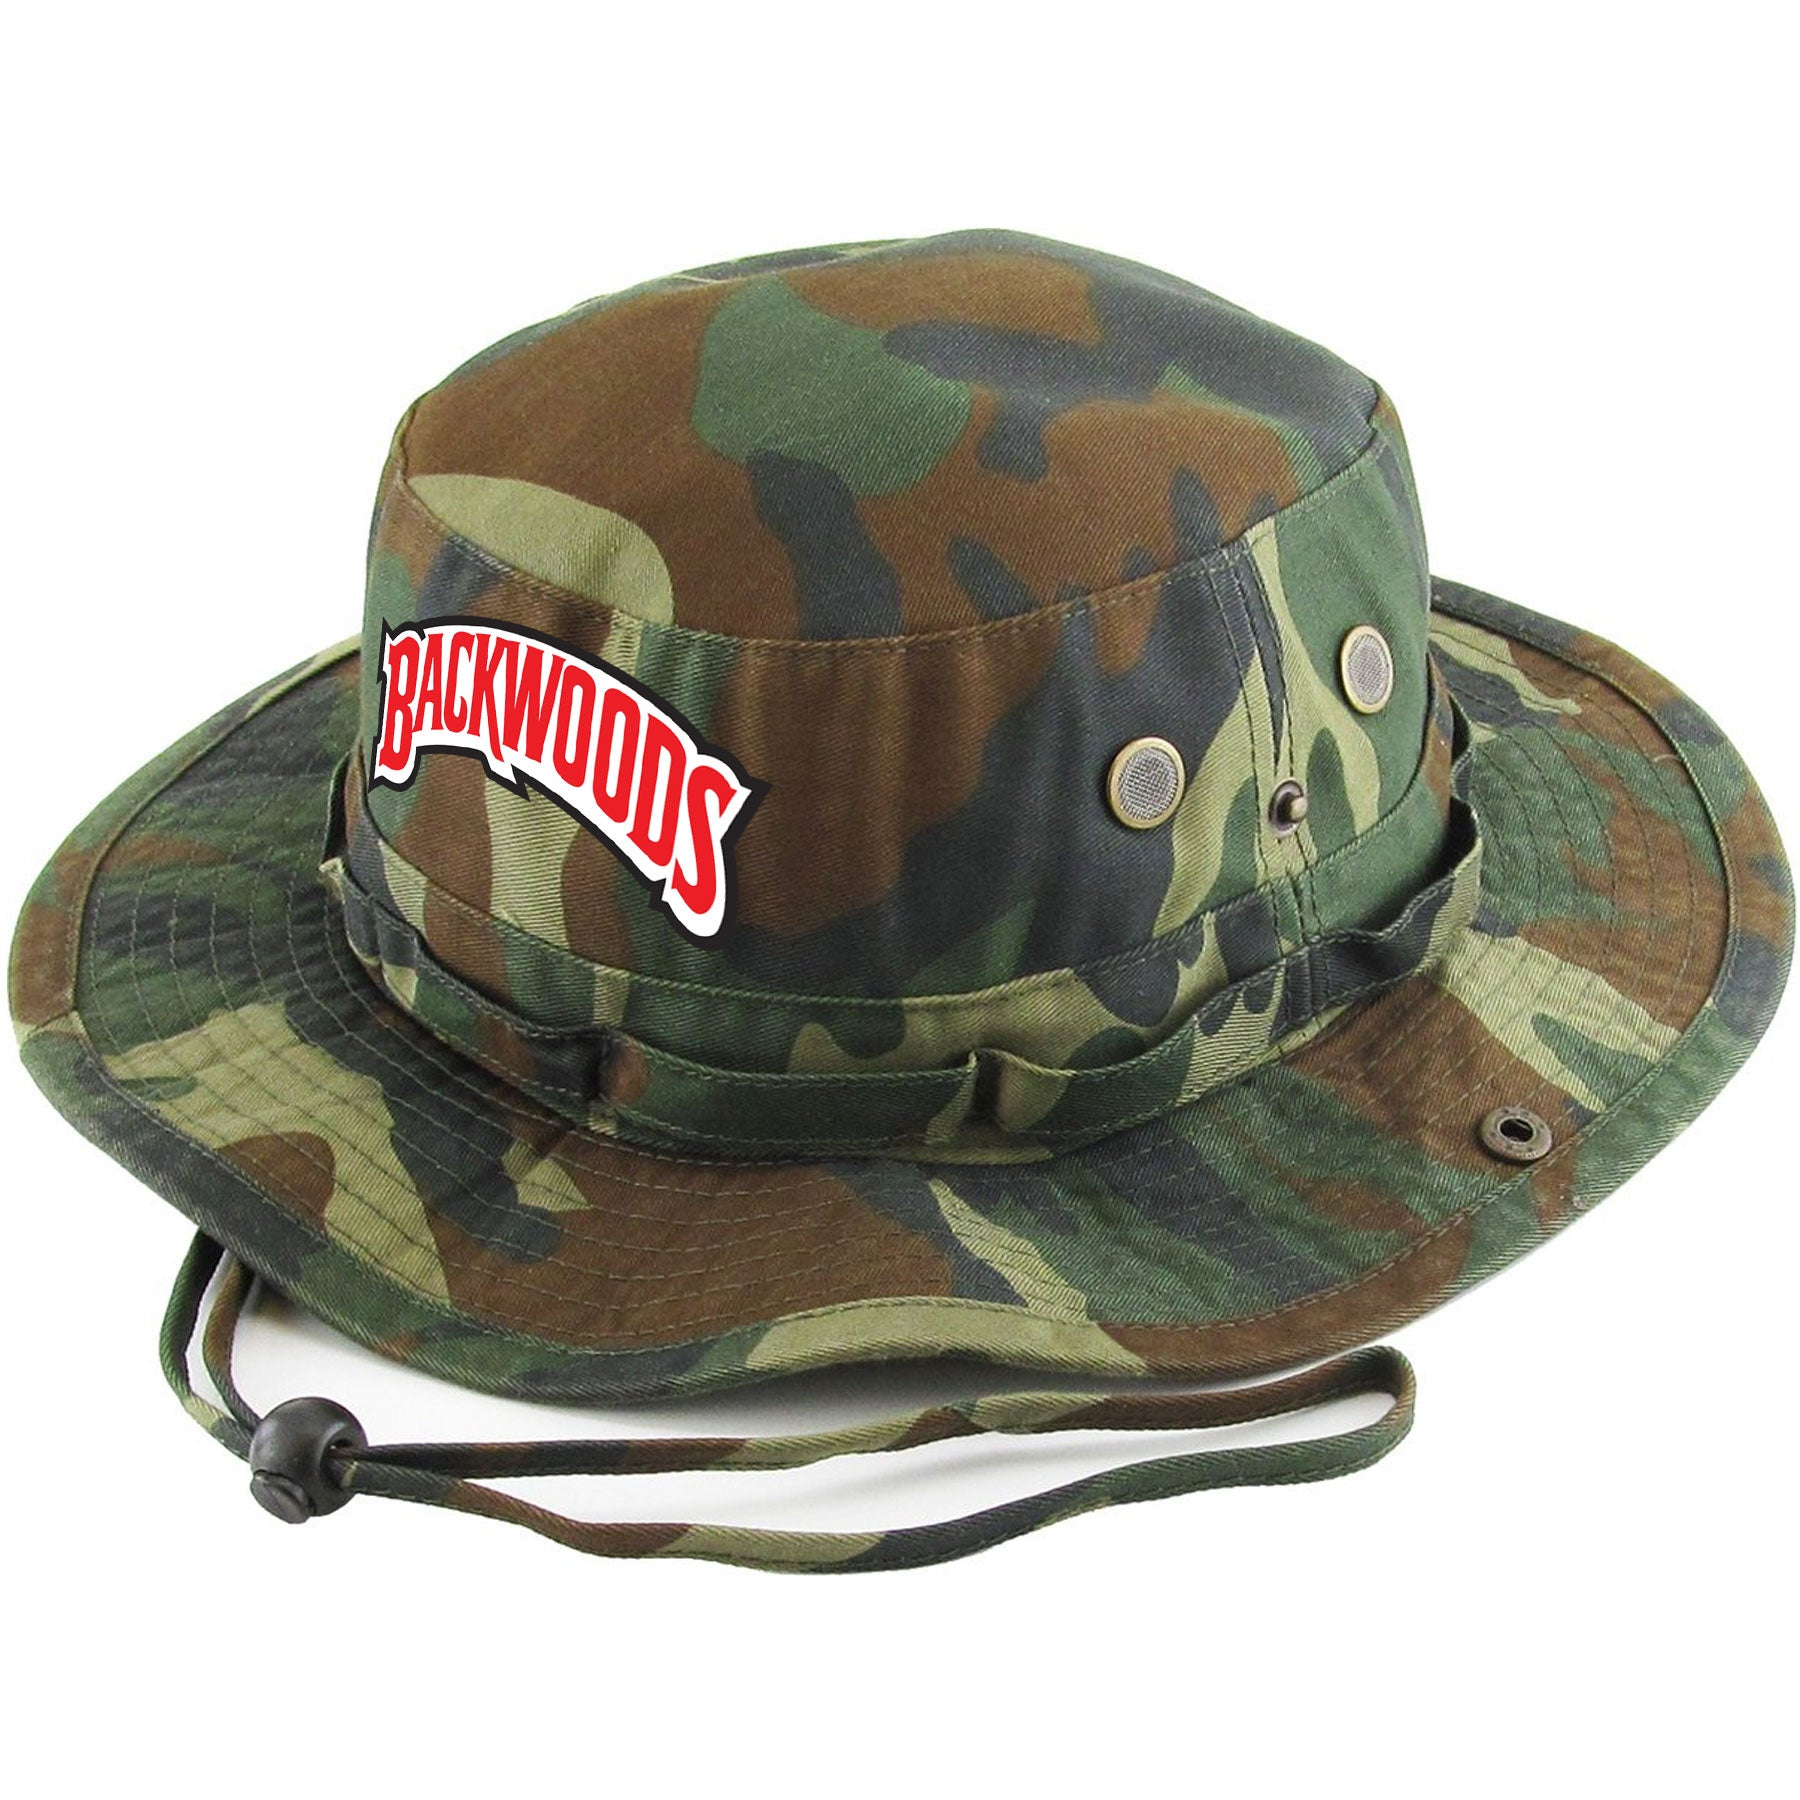 7a9774b59f47ce Embroidered on the front of the camouflage Backwoods Wild n' Mild Cigars Camouflage  Boonie Bucket